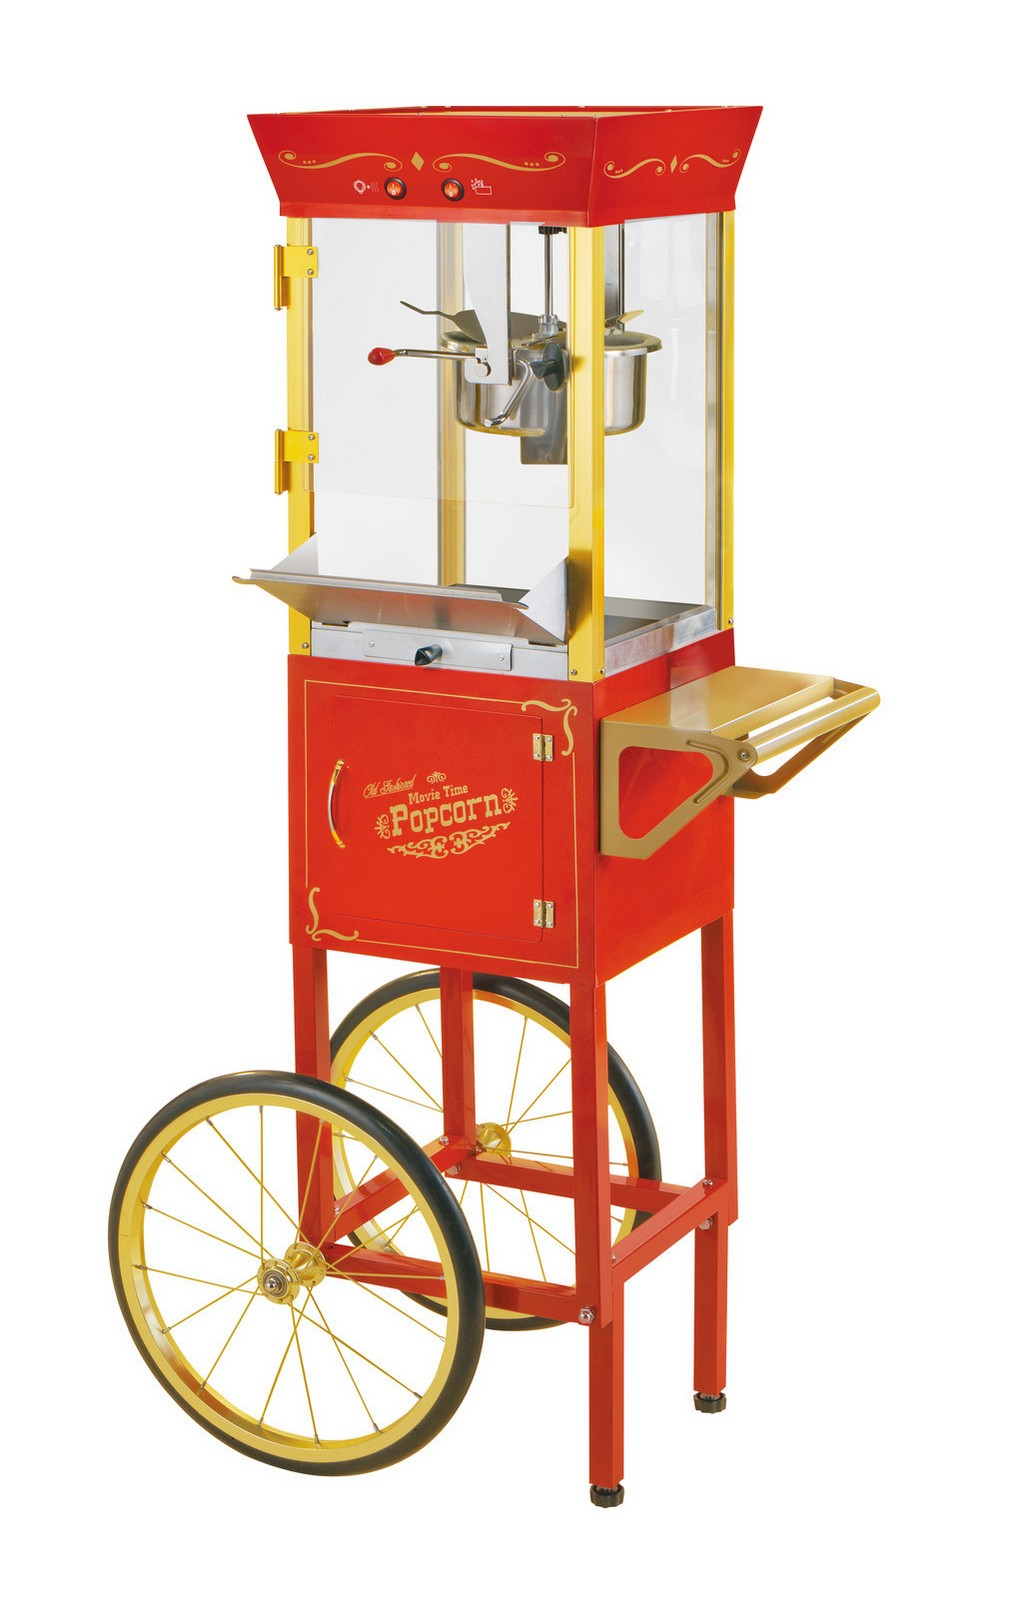 commercial popcorn machine, popcorn machine comparison, rental of popcorn machine